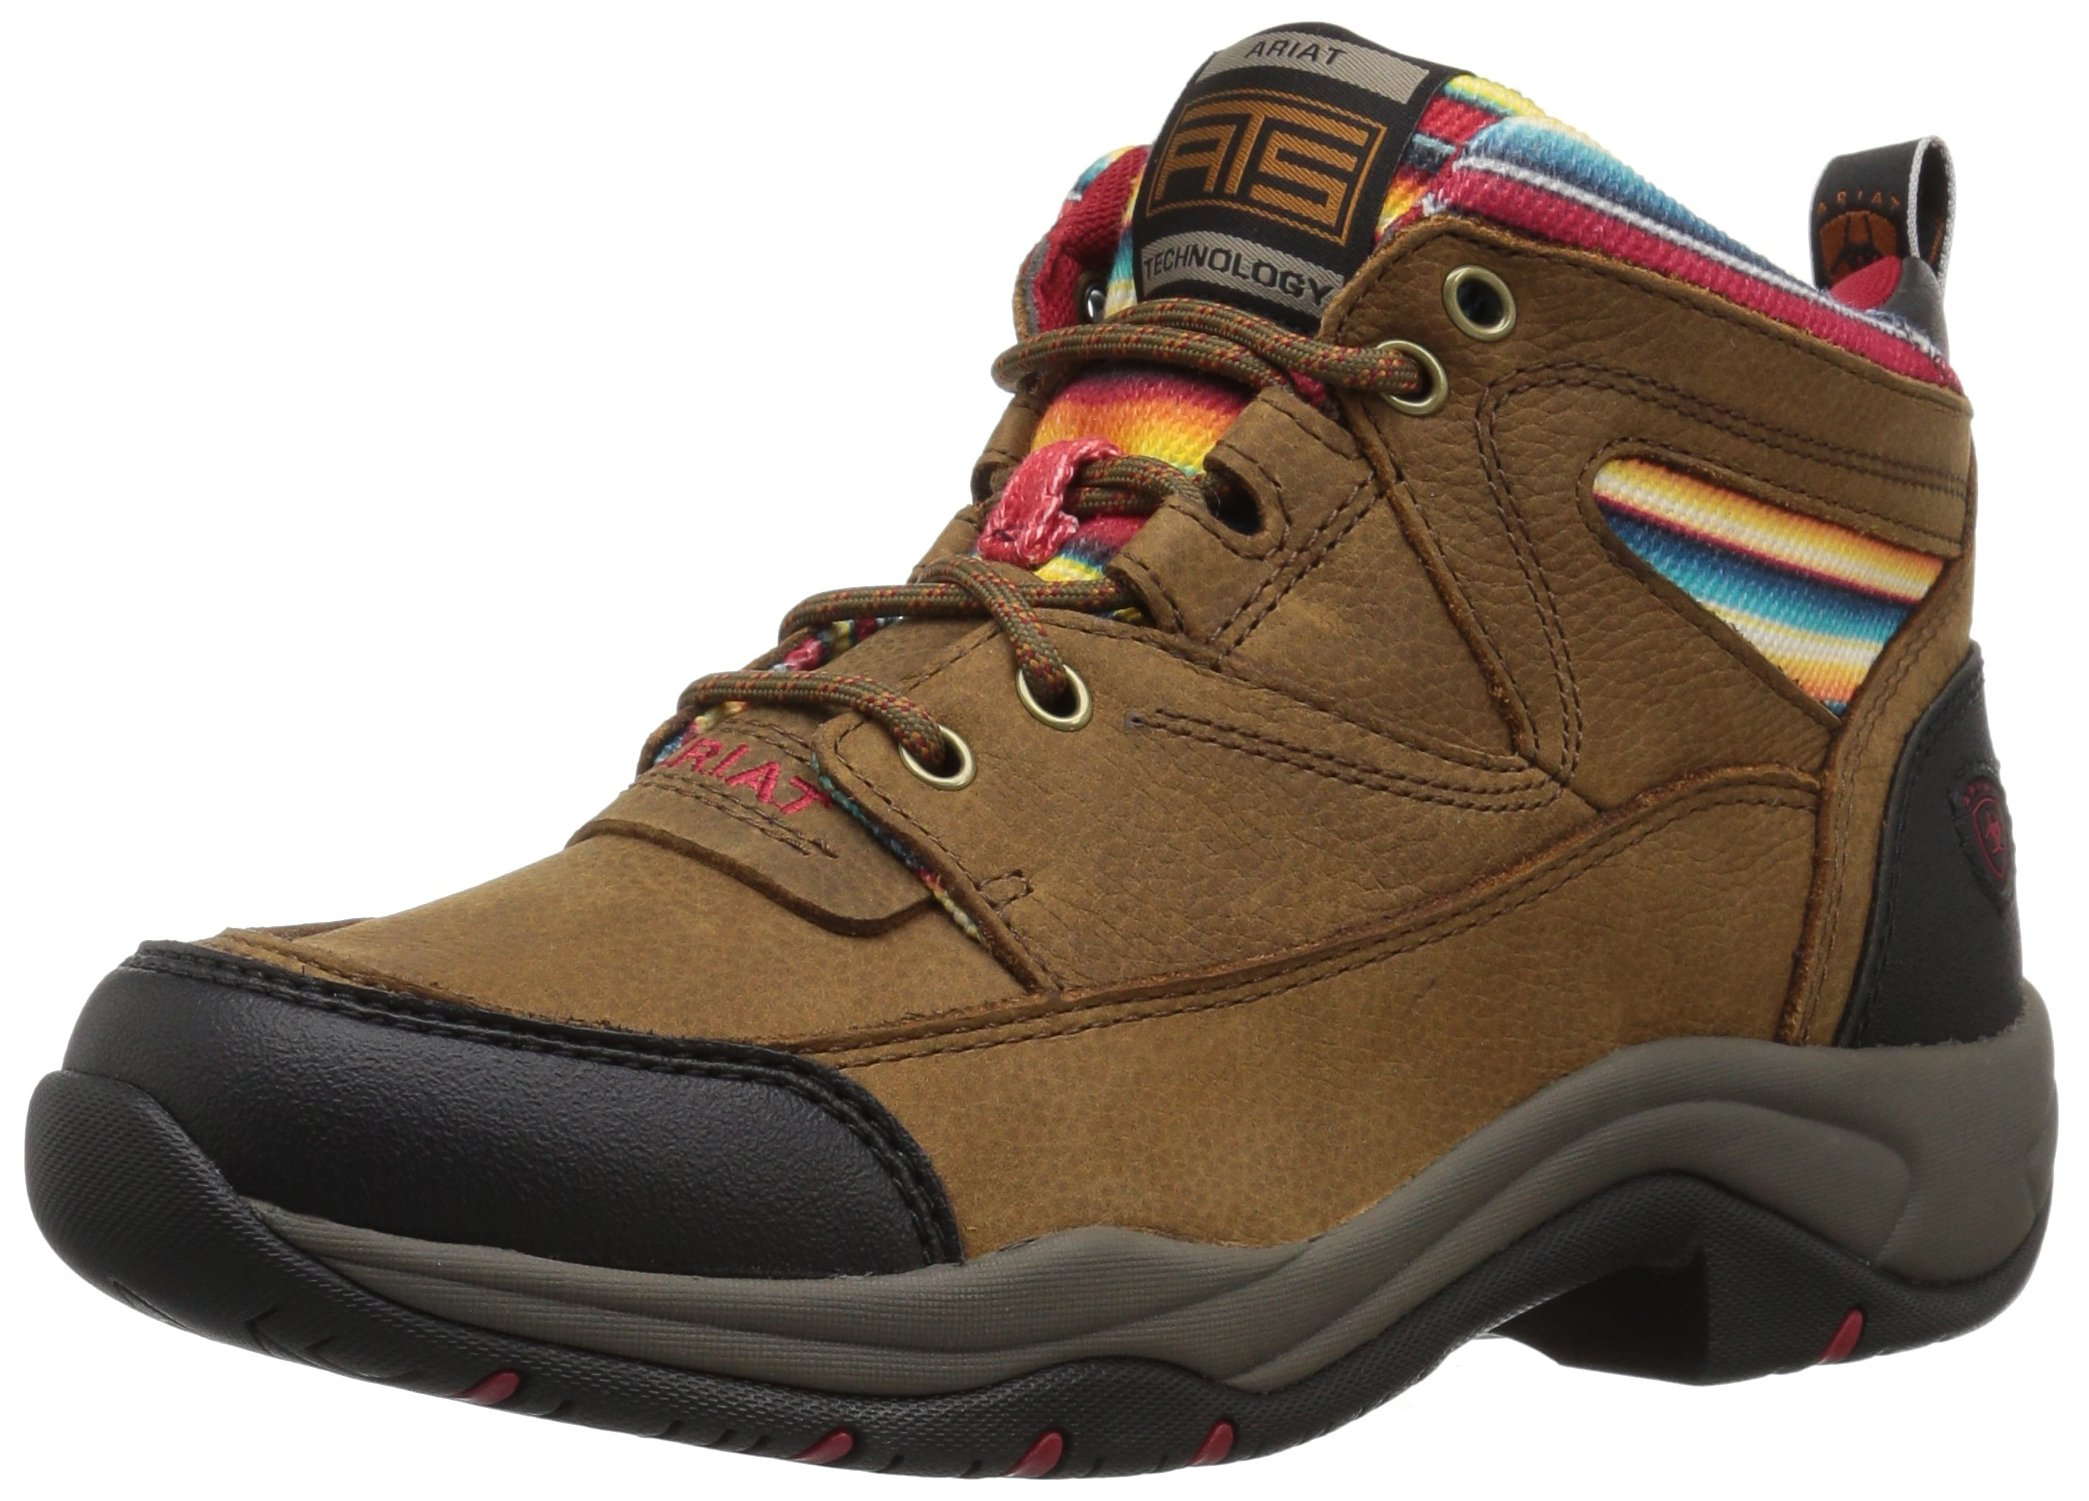 Ariat Women's Terrain Work Boot, Walnut/Serape, 8.5 B US